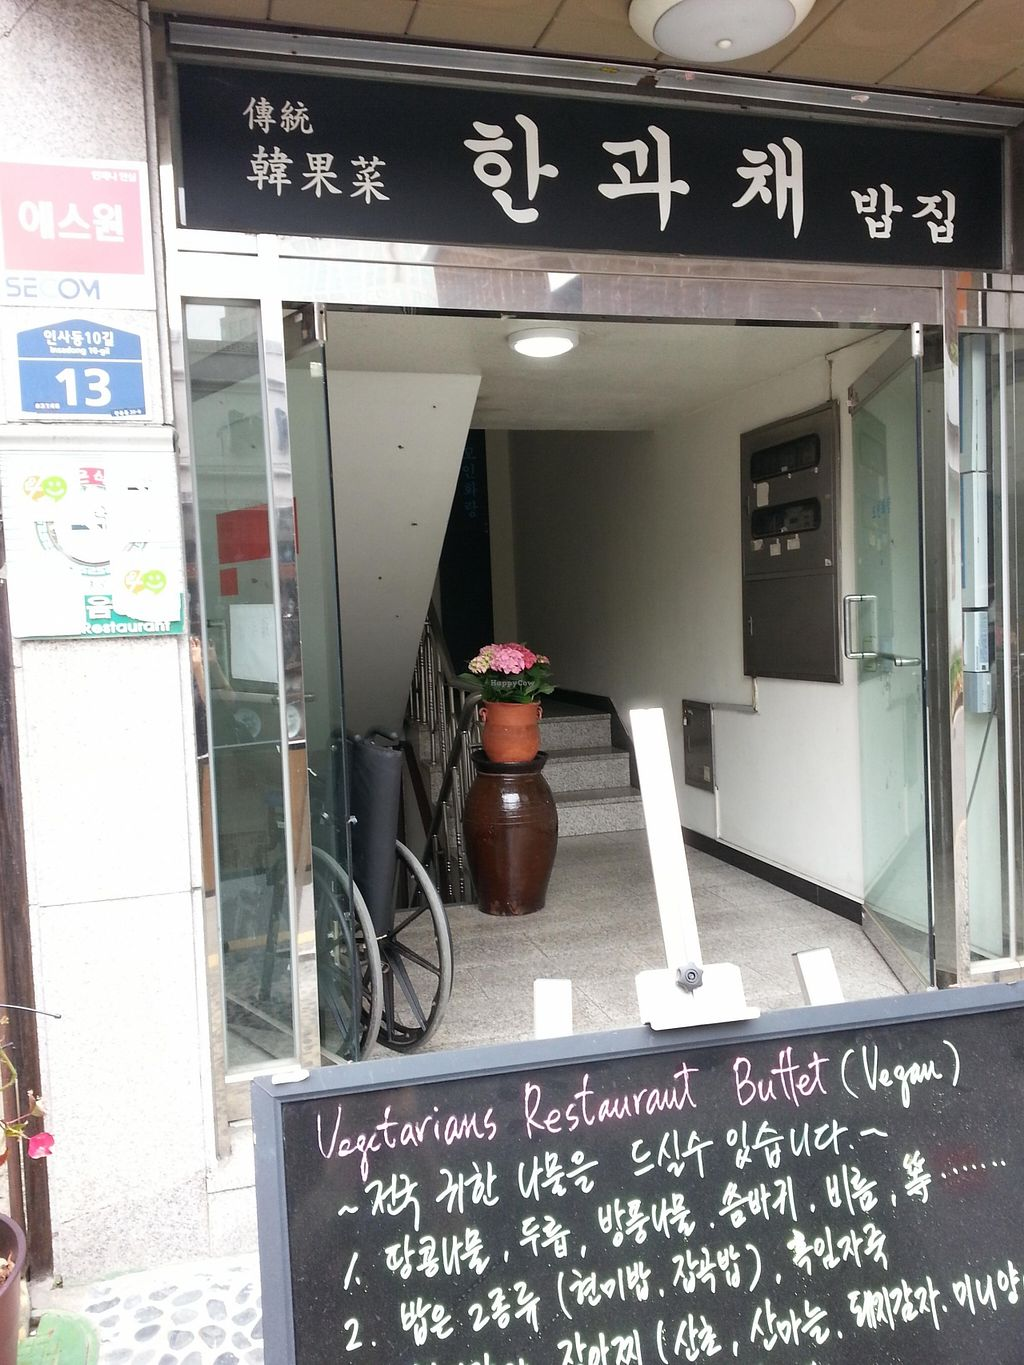 """Photo of Han Gwa Chae - 한과채  by <a href=""""/members/profile/inthesewords"""">inthesewords</a> <br/>The entrance with the sign <br/> May 9, 2016  - <a href='/contact/abuse/image/11982/148169'>Report</a>"""